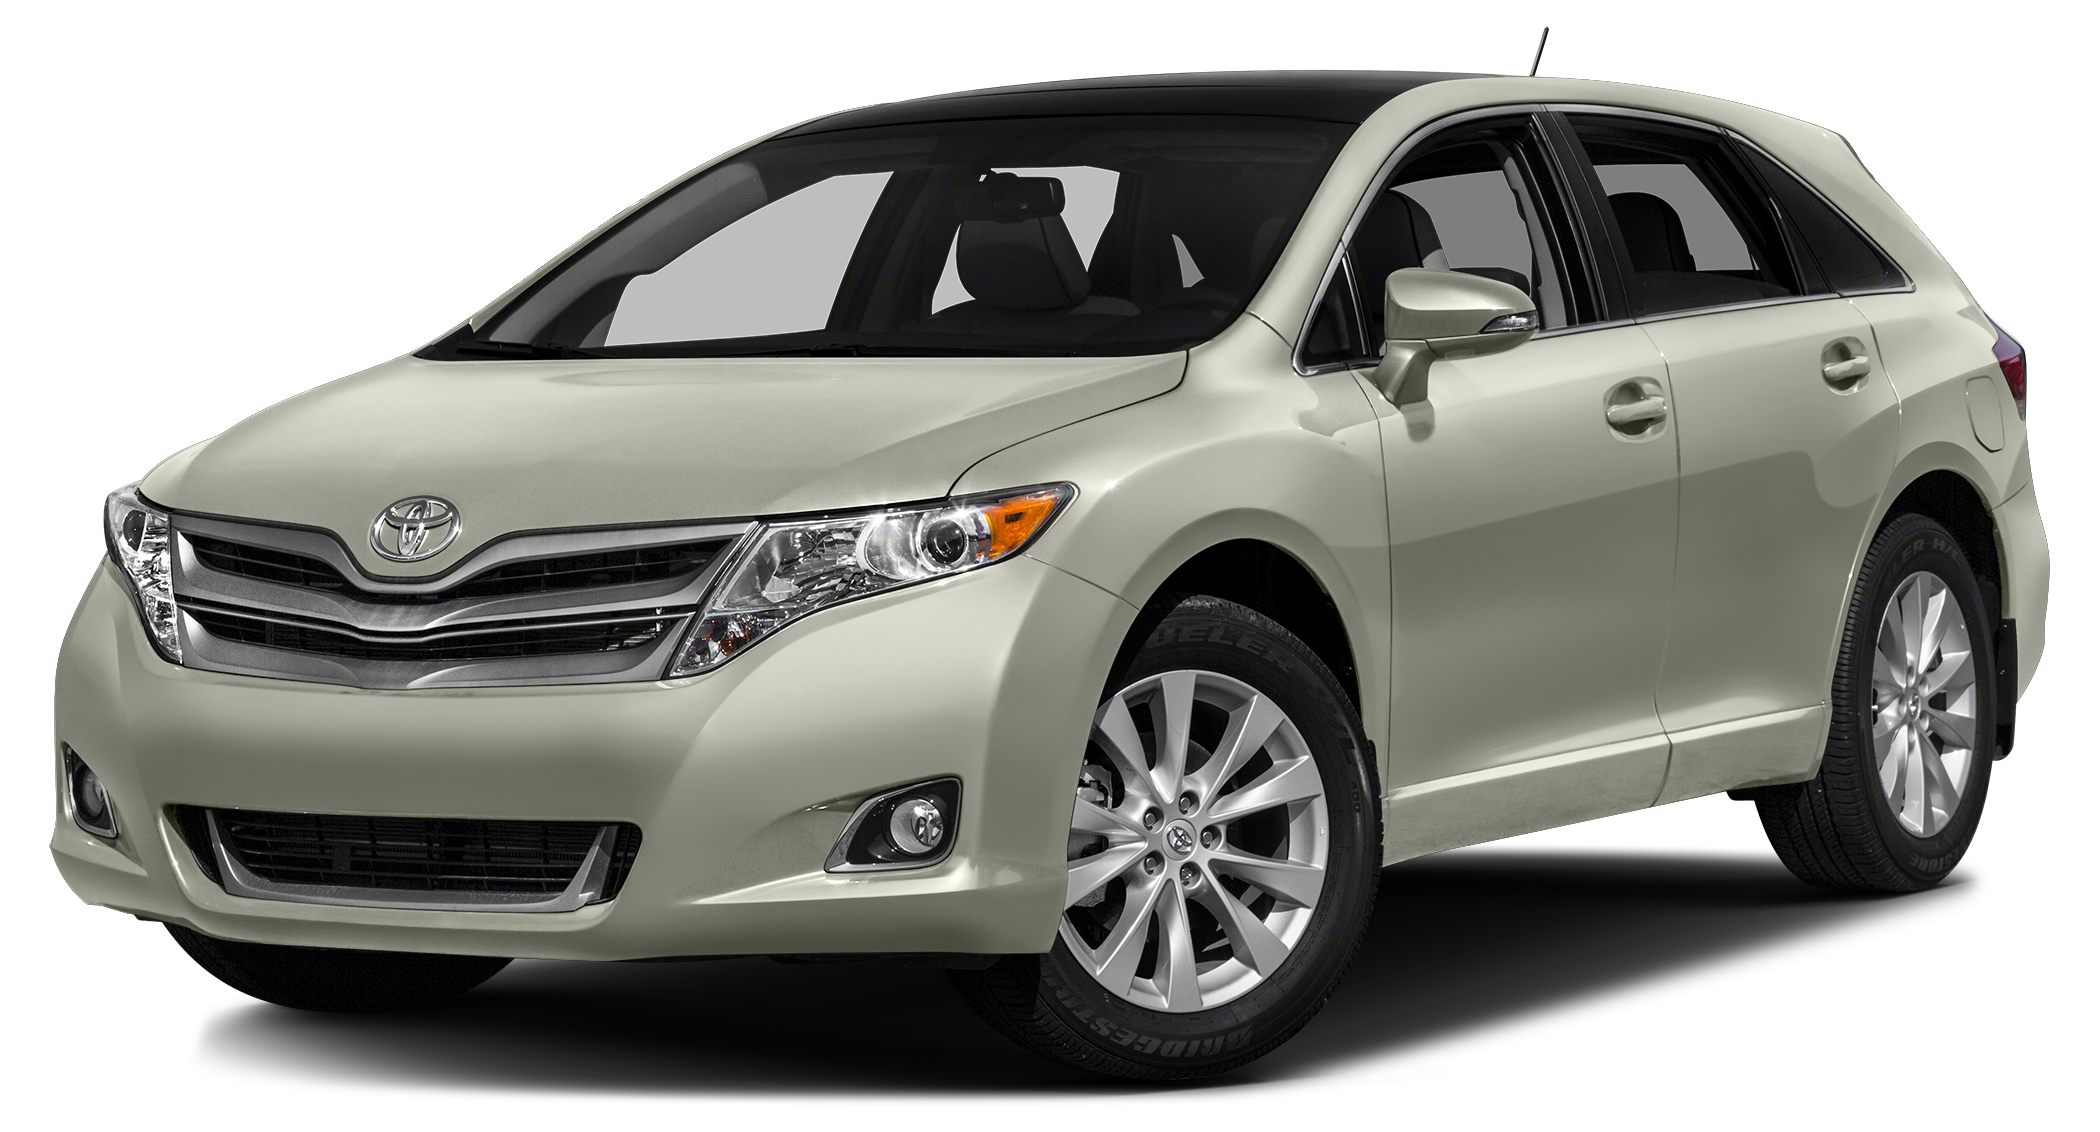 2013 Toyota Venza XLE CARFAX 1-Owner FUEL EFFICIENT 25 MPG Hwy18 MPG City CLASSIC SILVER METALL